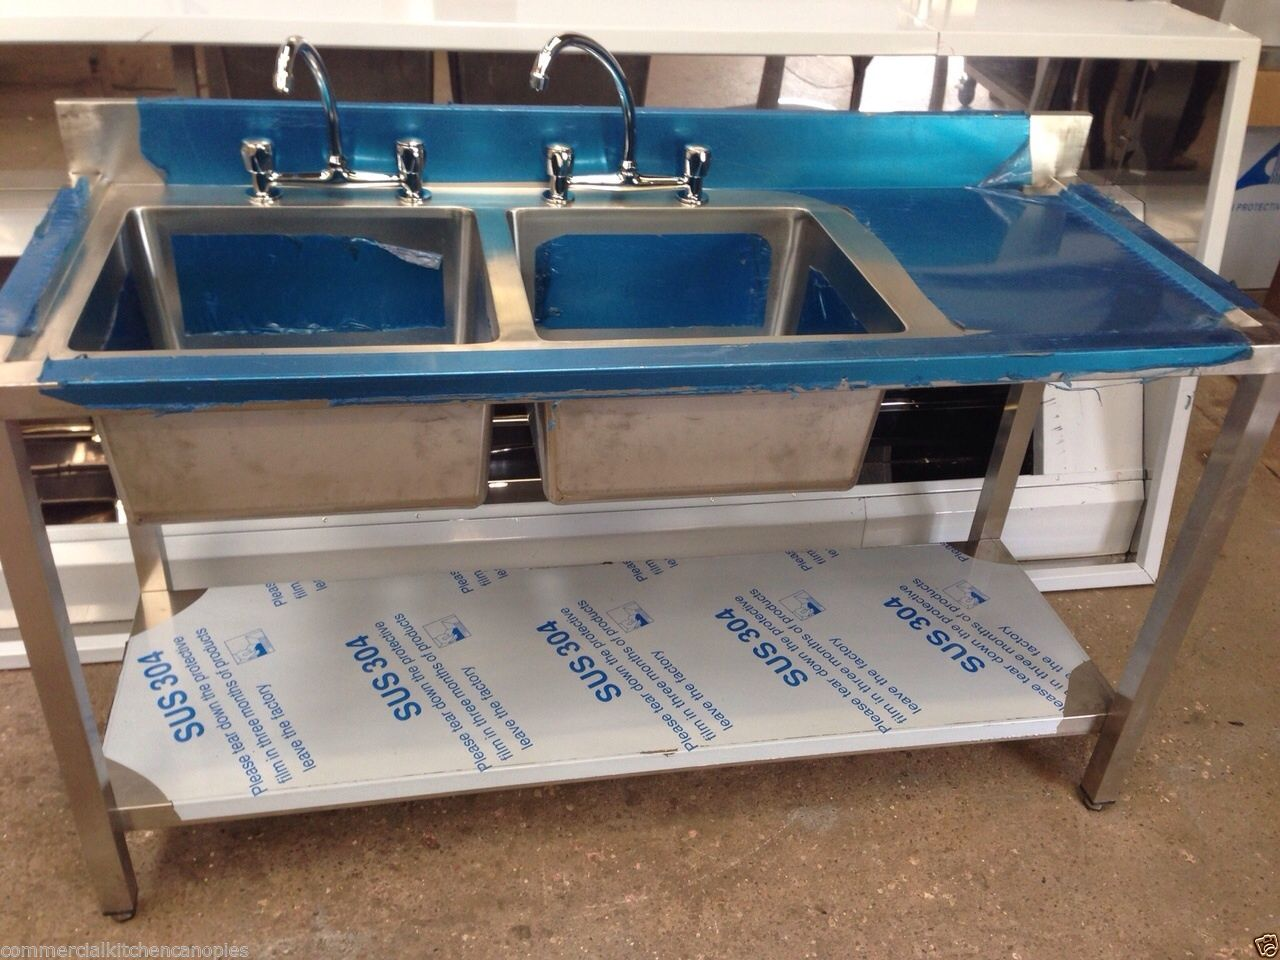 commercial catering kitchen stainless steel sink double bowl right